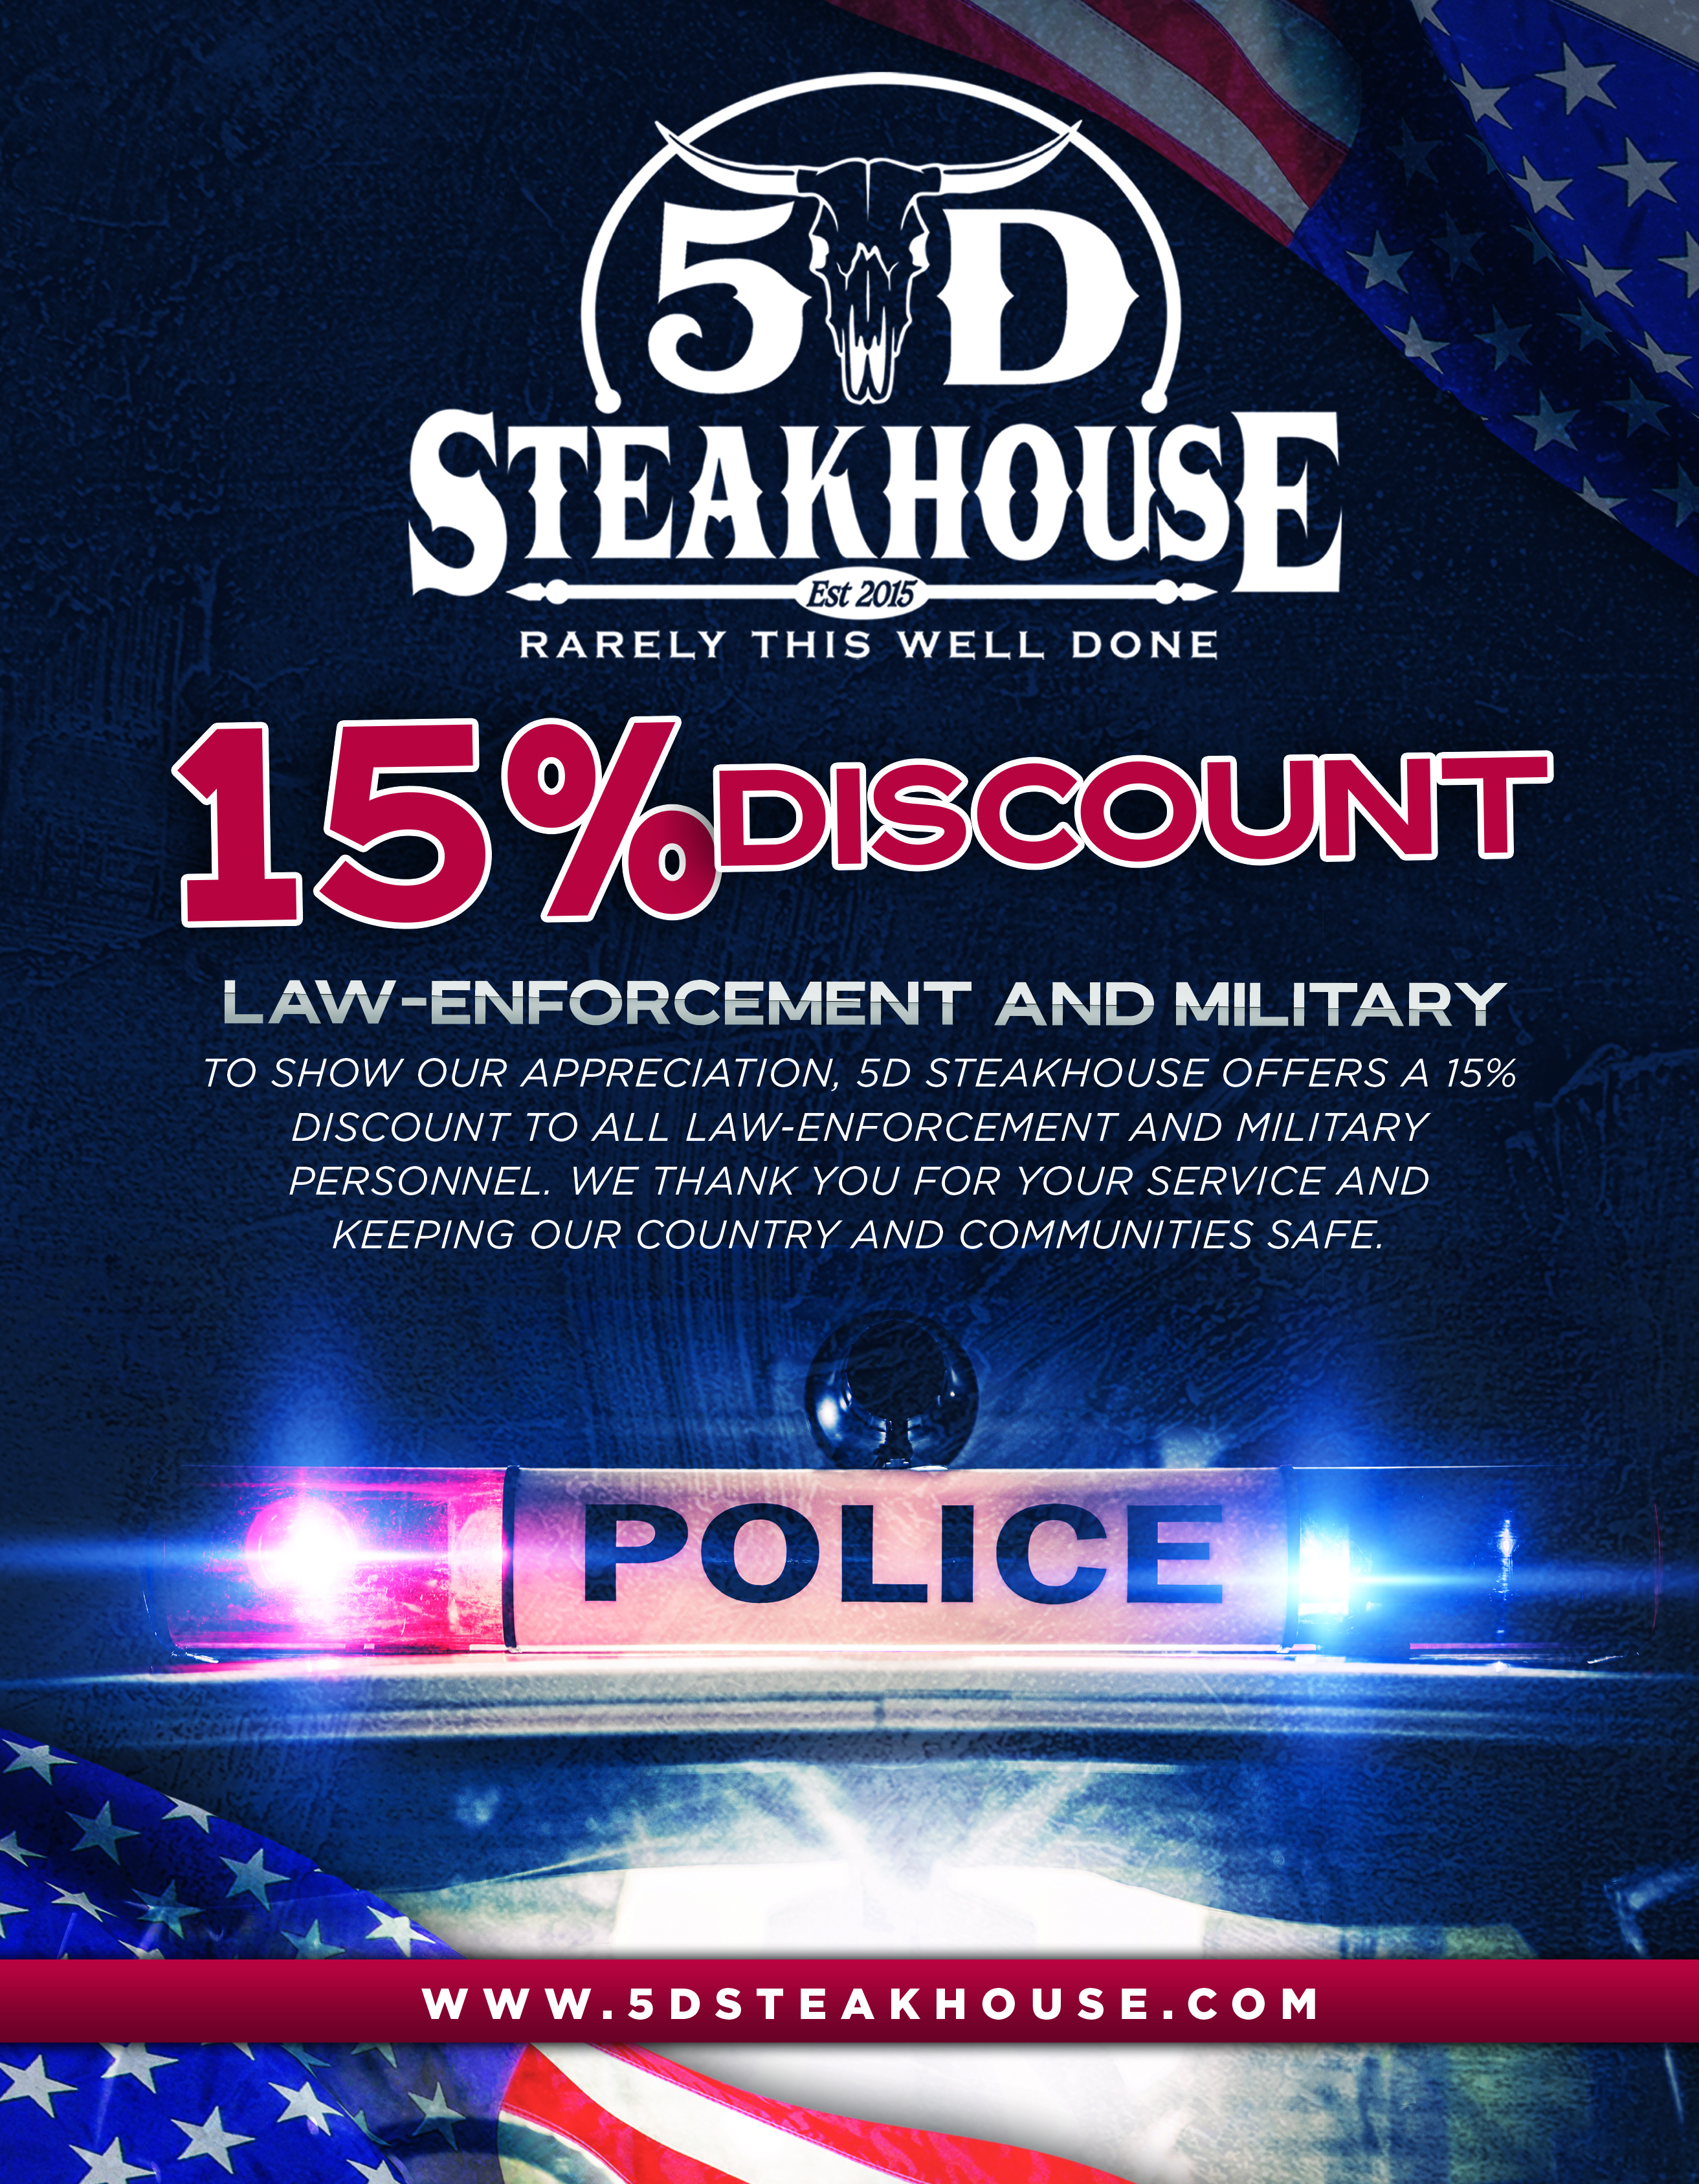 15% discount, law enforcement and military. to show our appreciation, 5D steakhouse offers a 15% discount to all law enforcement and military personnel. we thank you for your service and keeping our country and communites safe.